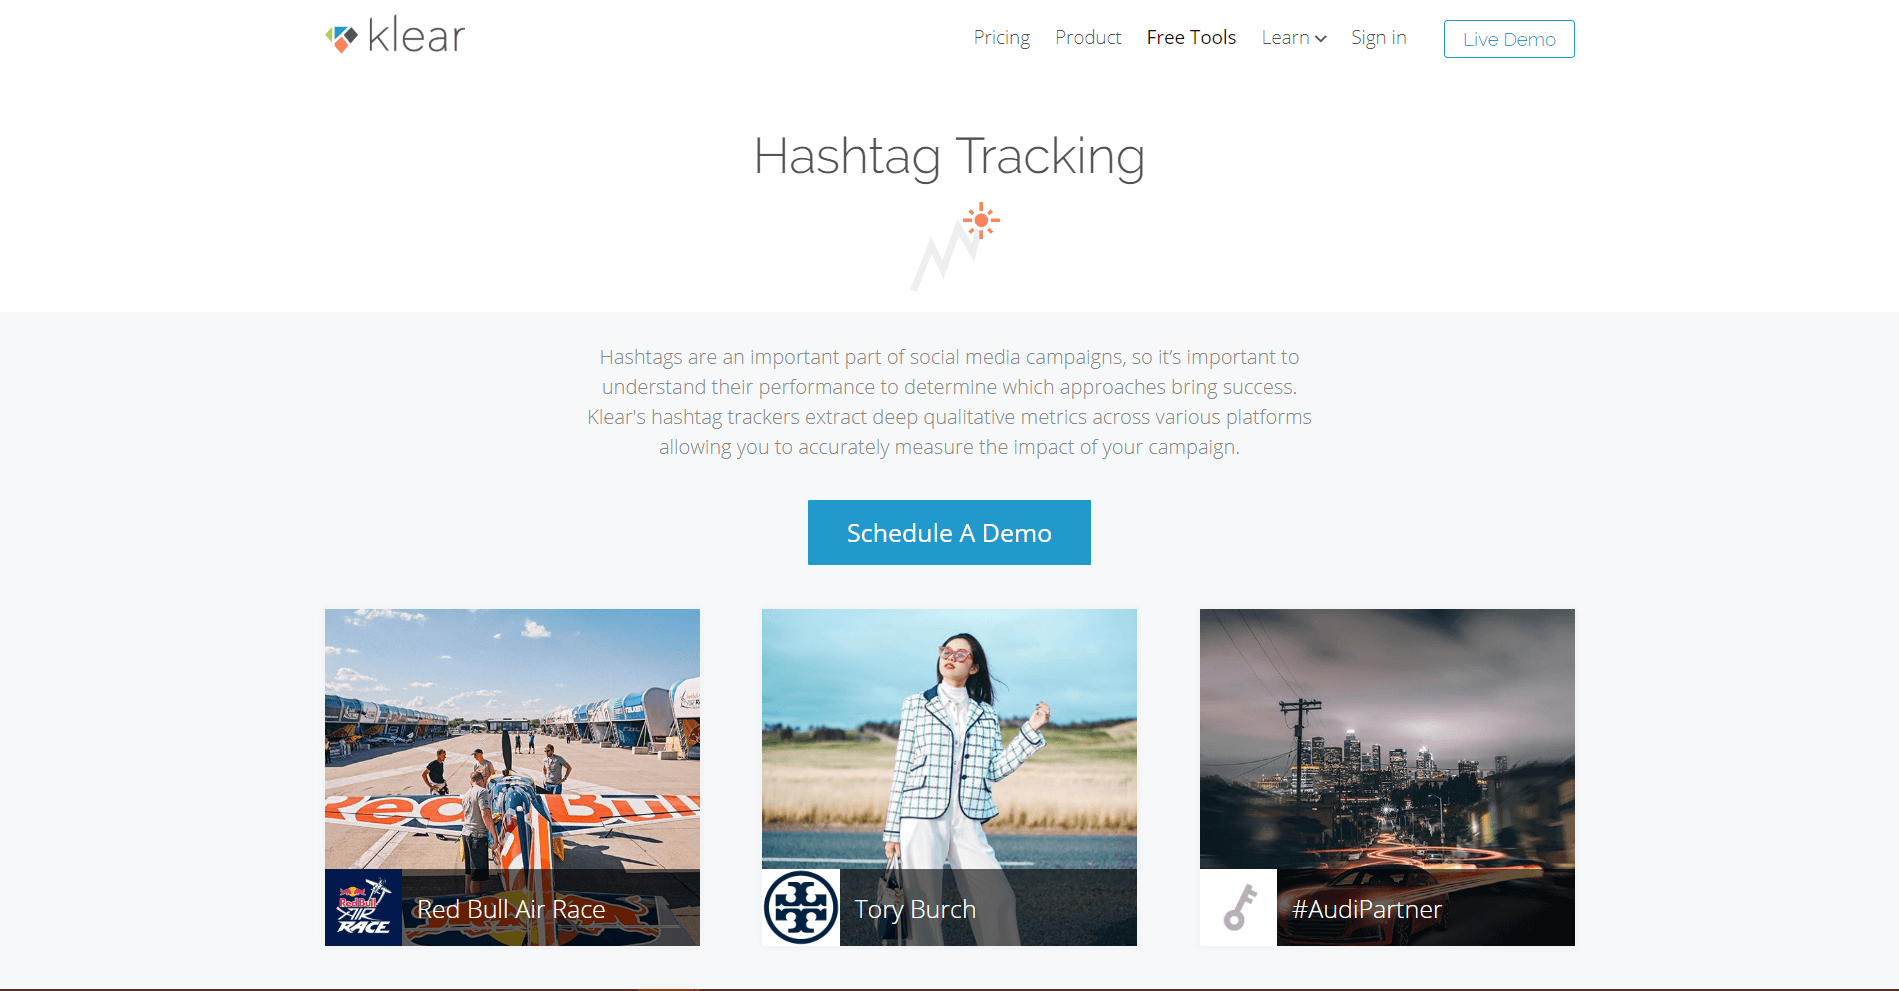 Klear Hashtag Tracking Tools